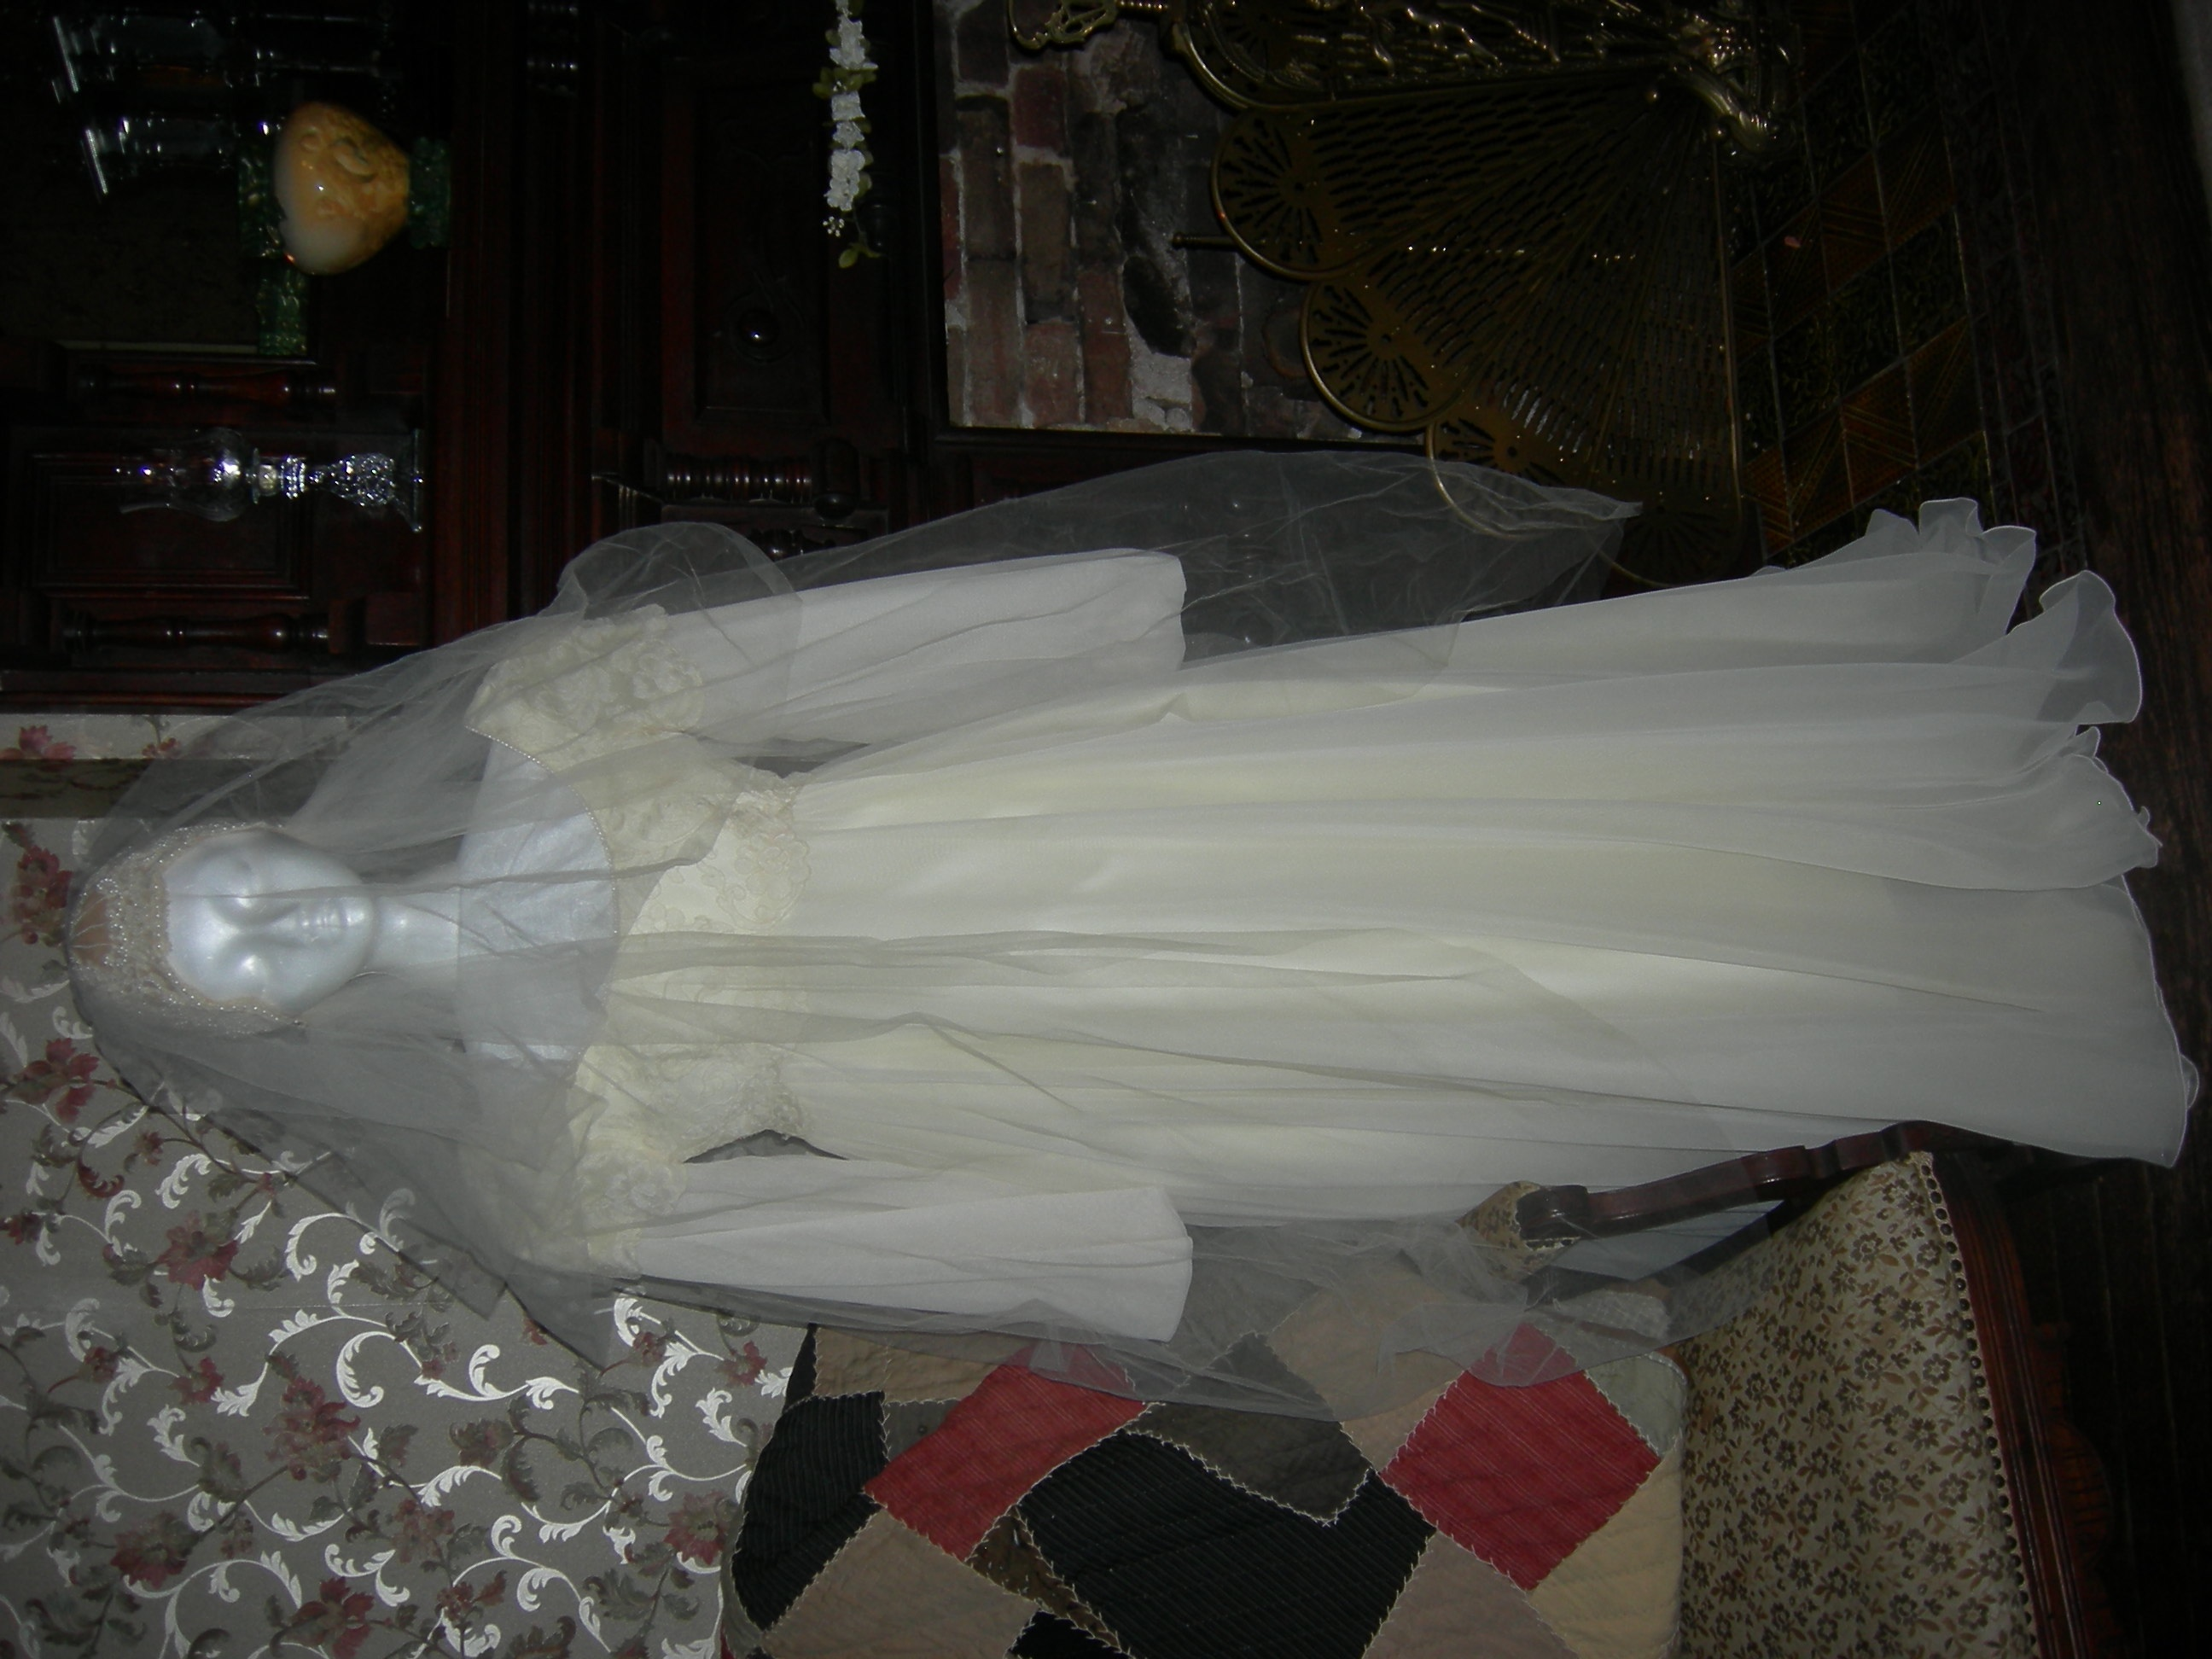 wedding dress 2 in parlor